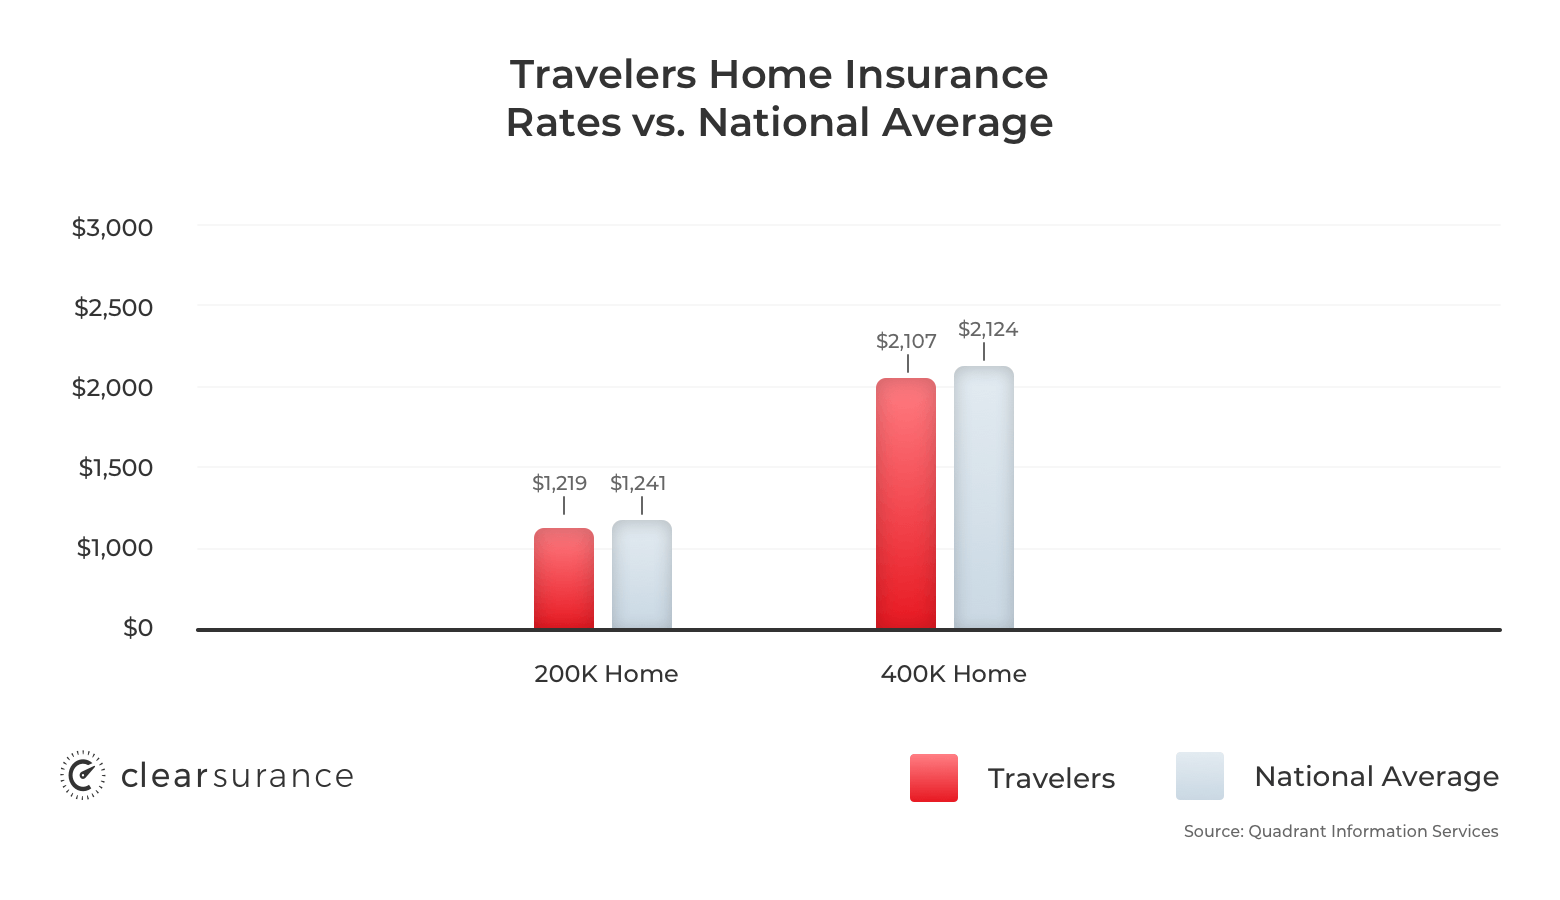 Travelers home insurance rates